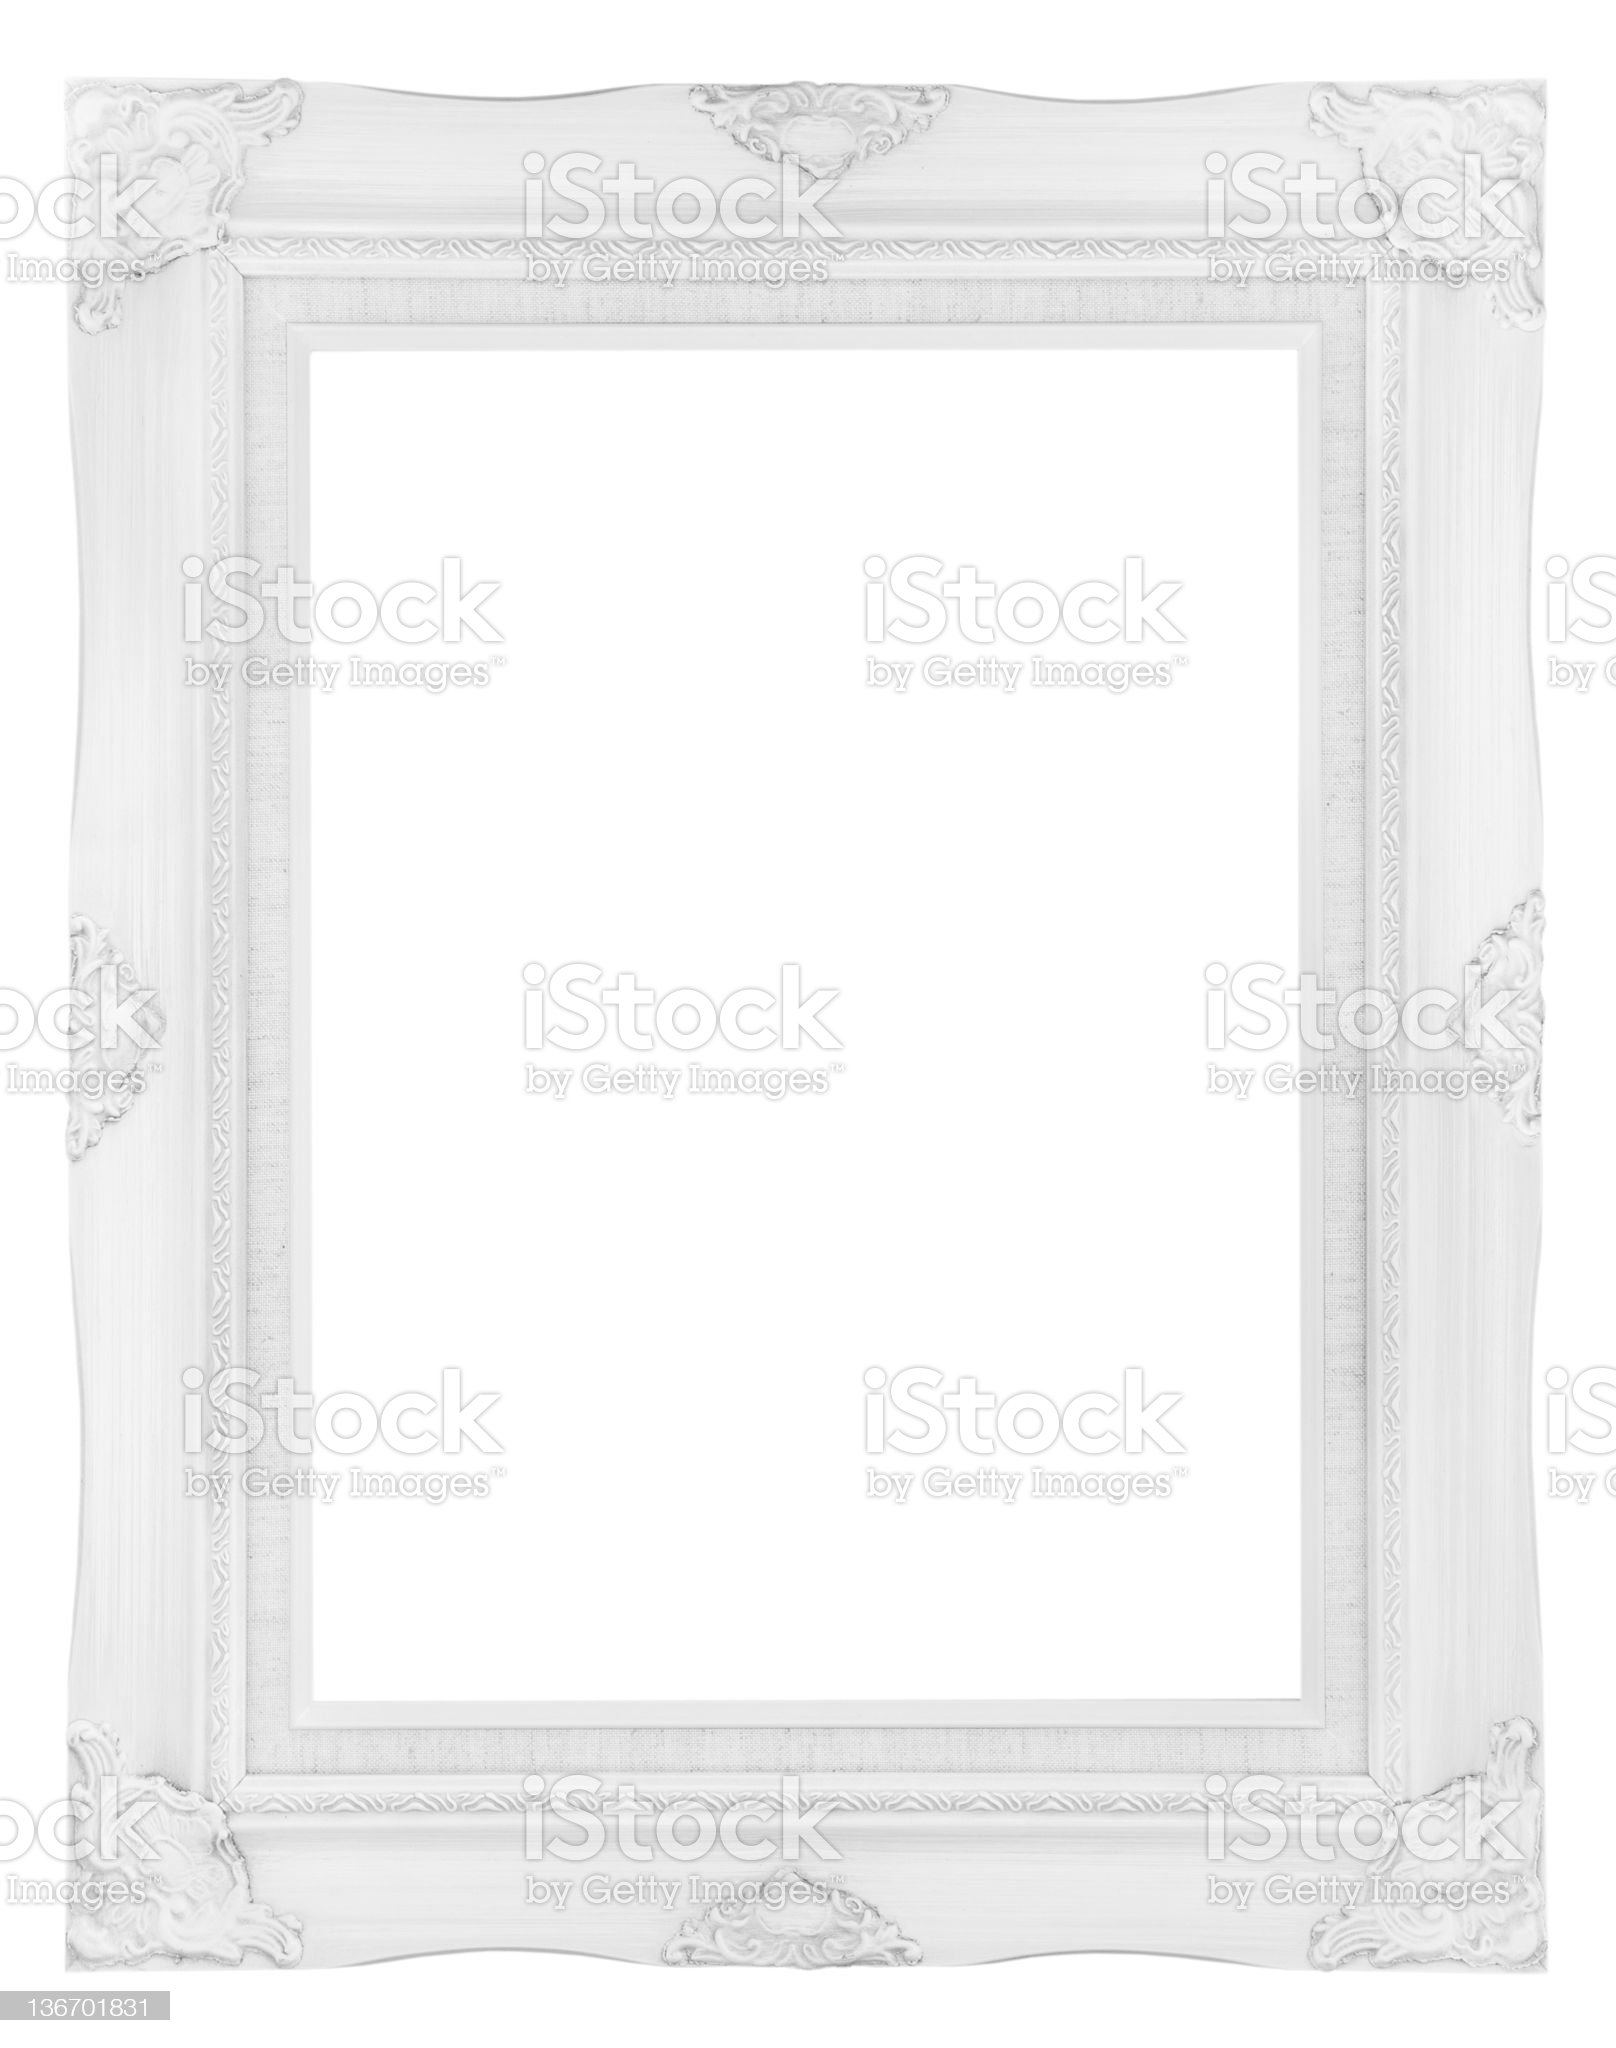 white wooden picture frame royalty-free stock photo